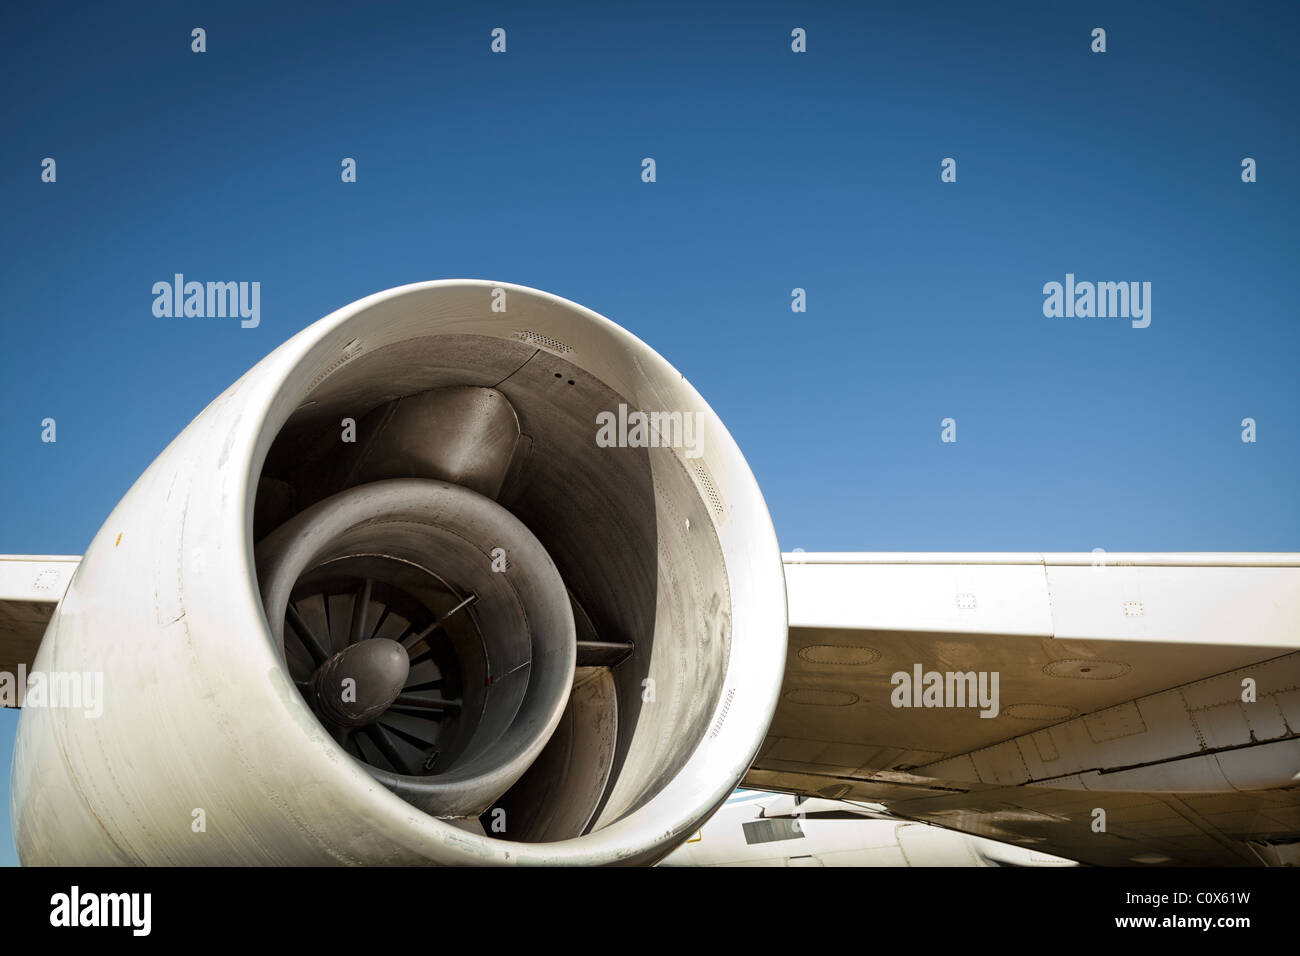 Jet aircraft plane details against blue sky. Engine.  Aircraft:  Convair CV-990 - Stock Image